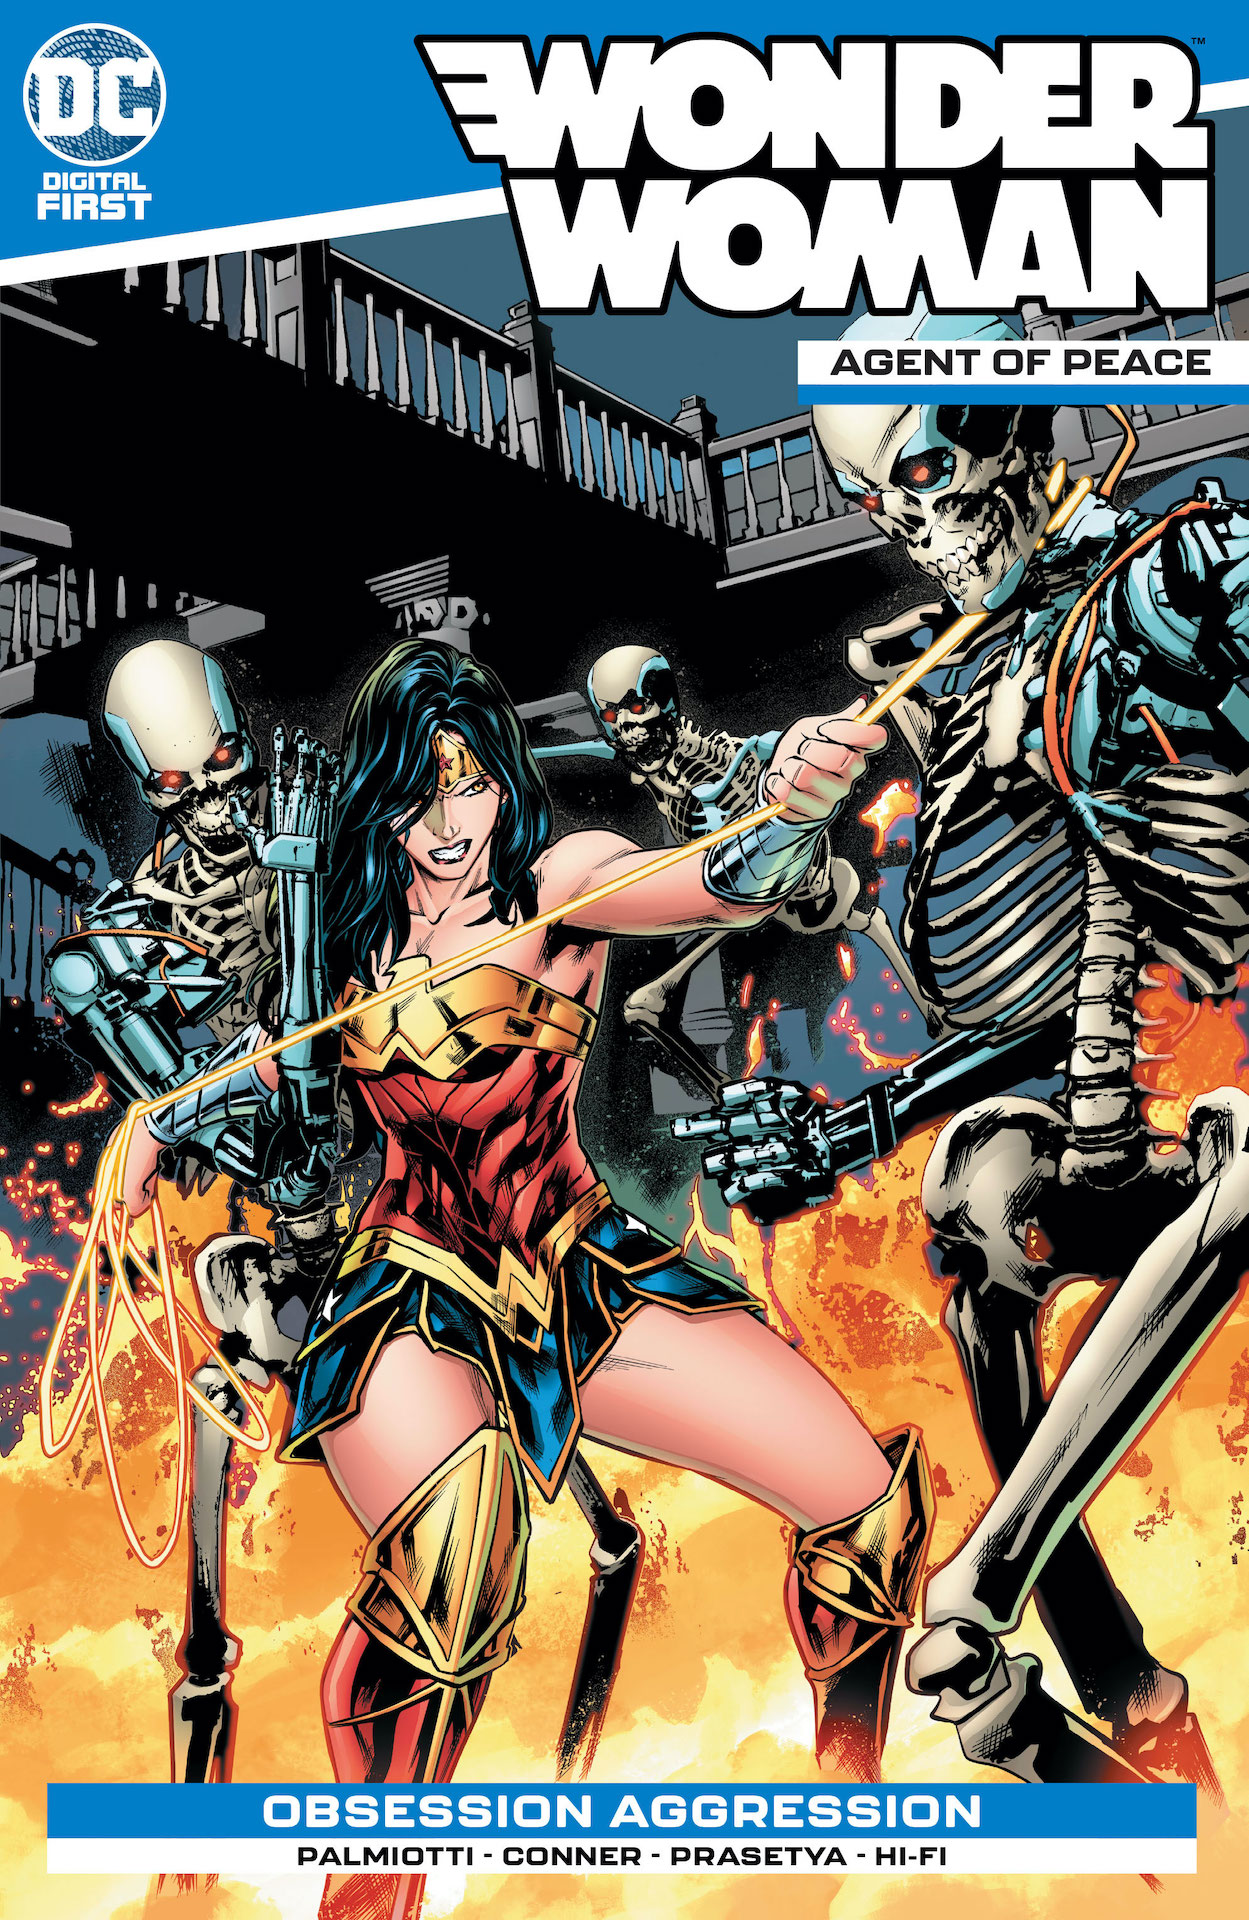 Wonder Woman's been ambushed! Who's done this and can Wonder Woman survive the onslaught?